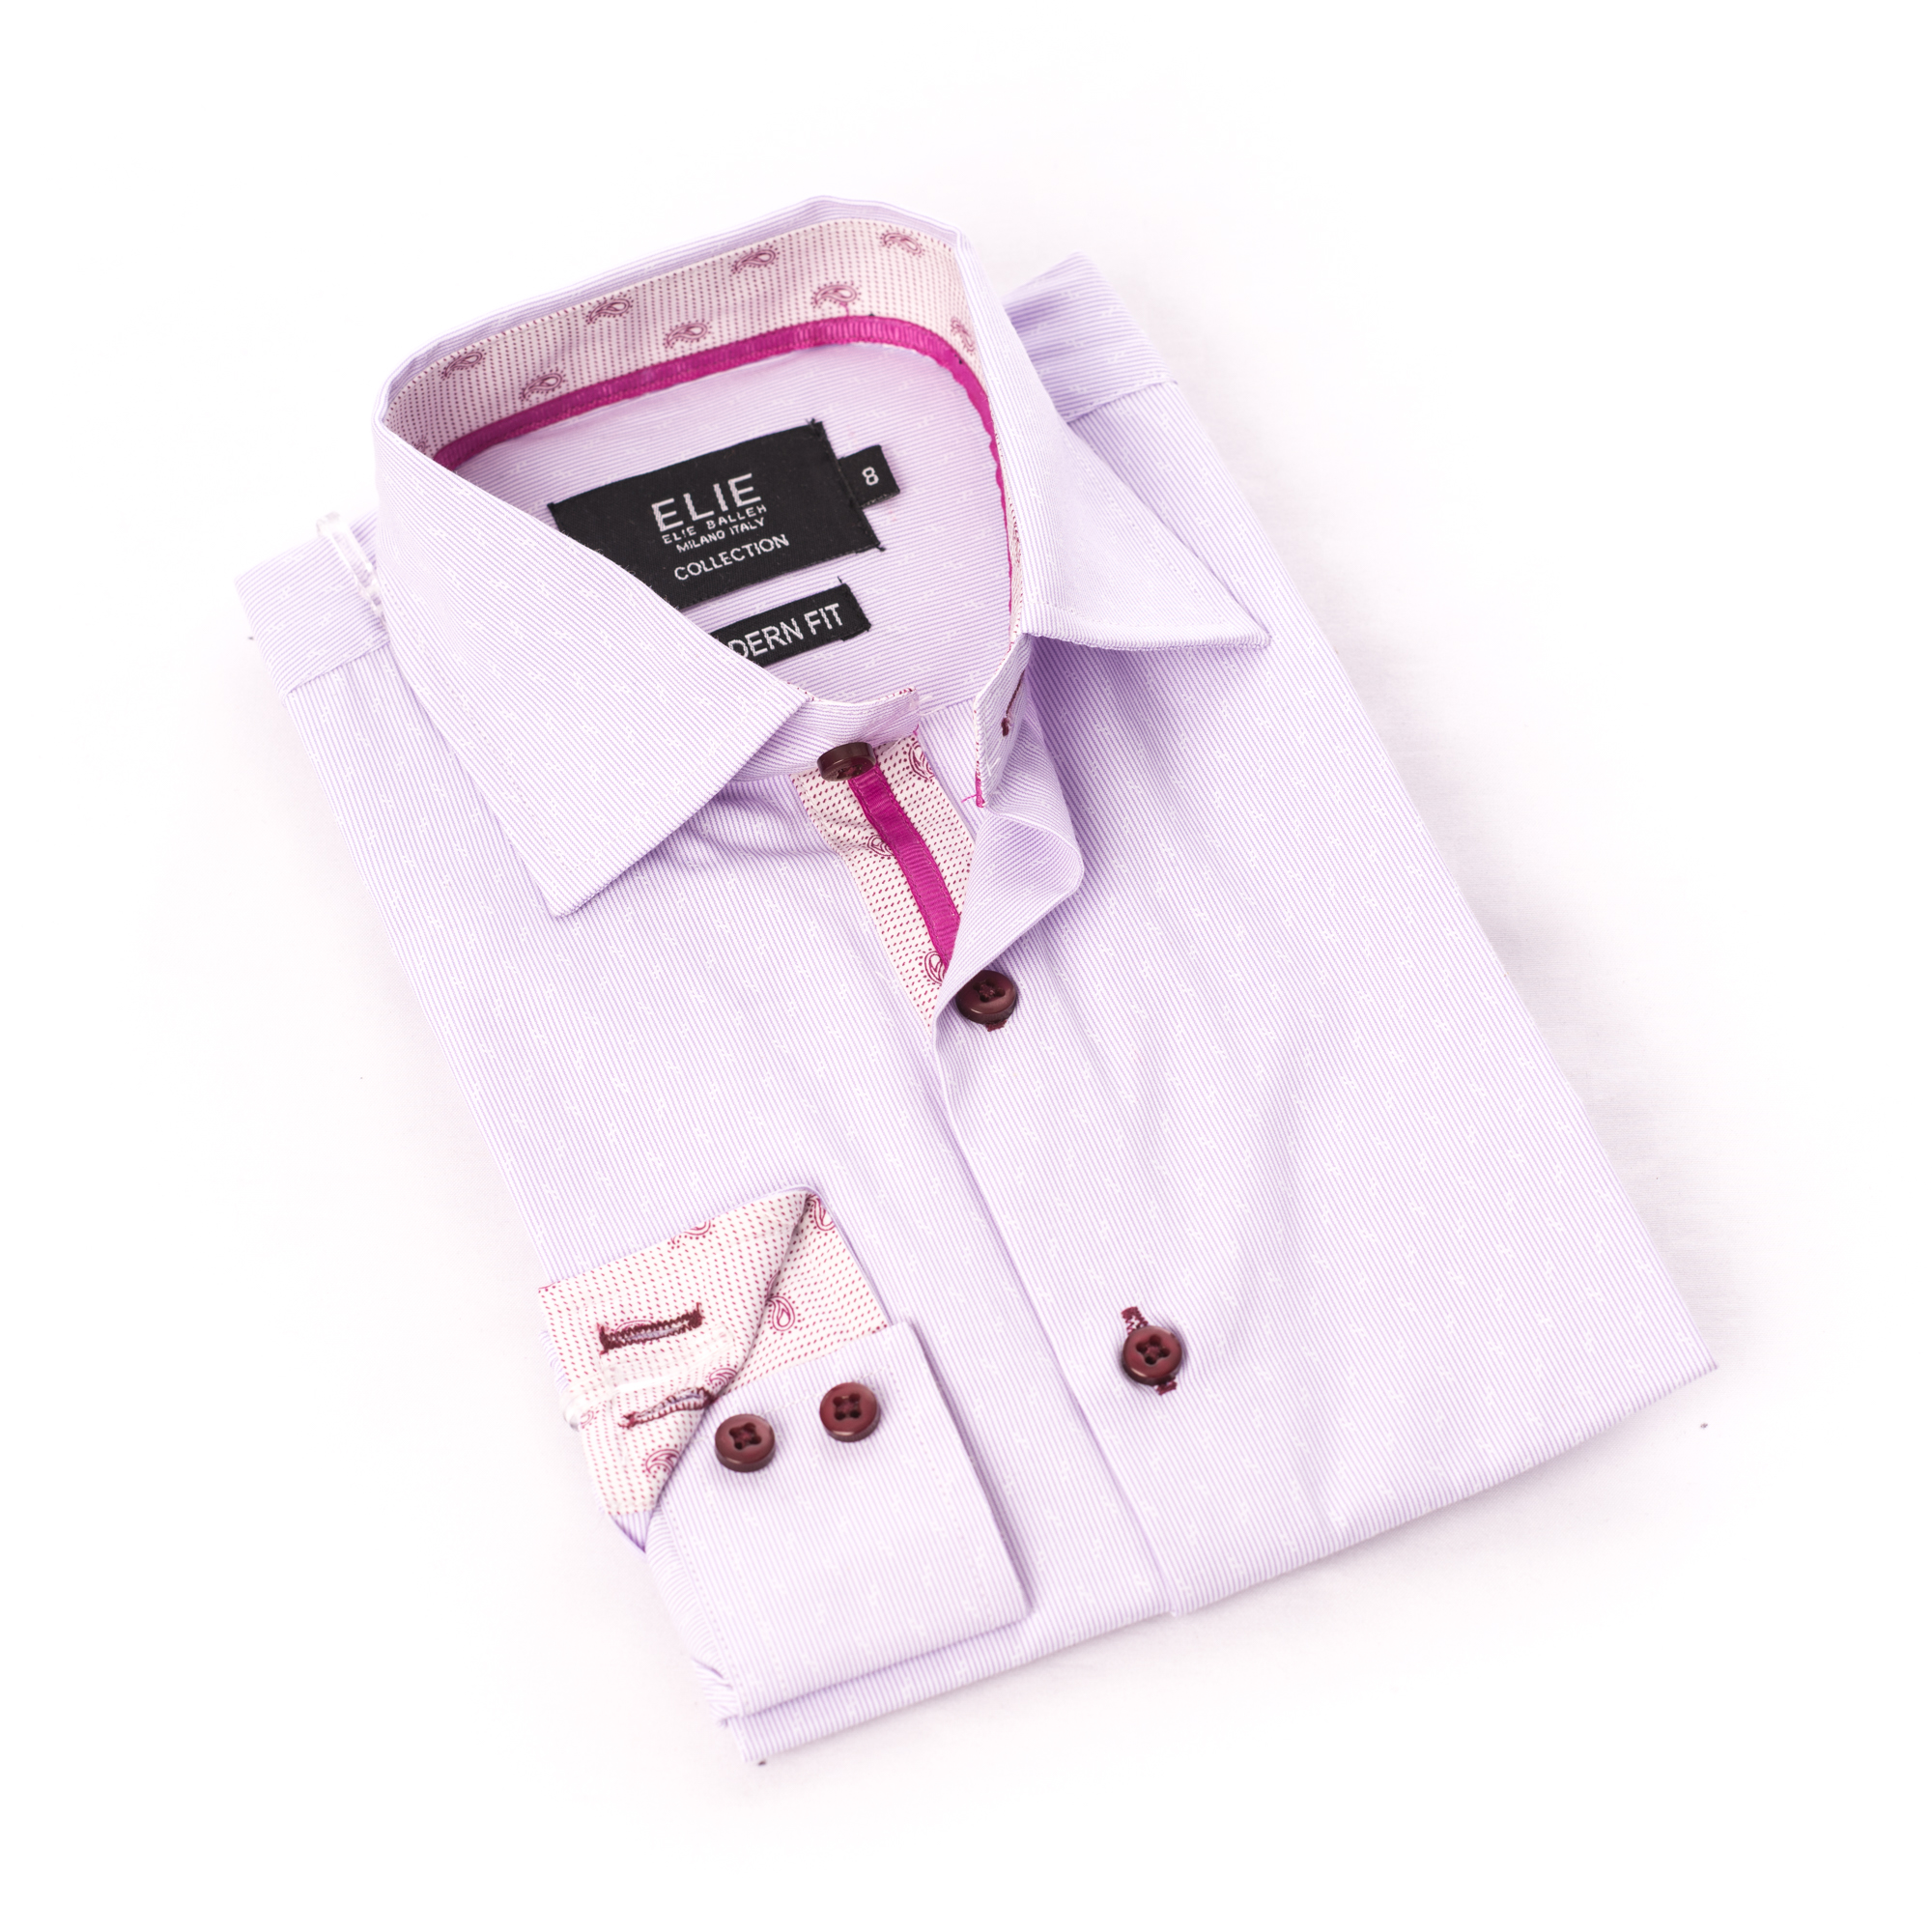 Pinstripe premium Boys Shirts / Button Down CEBSH316B